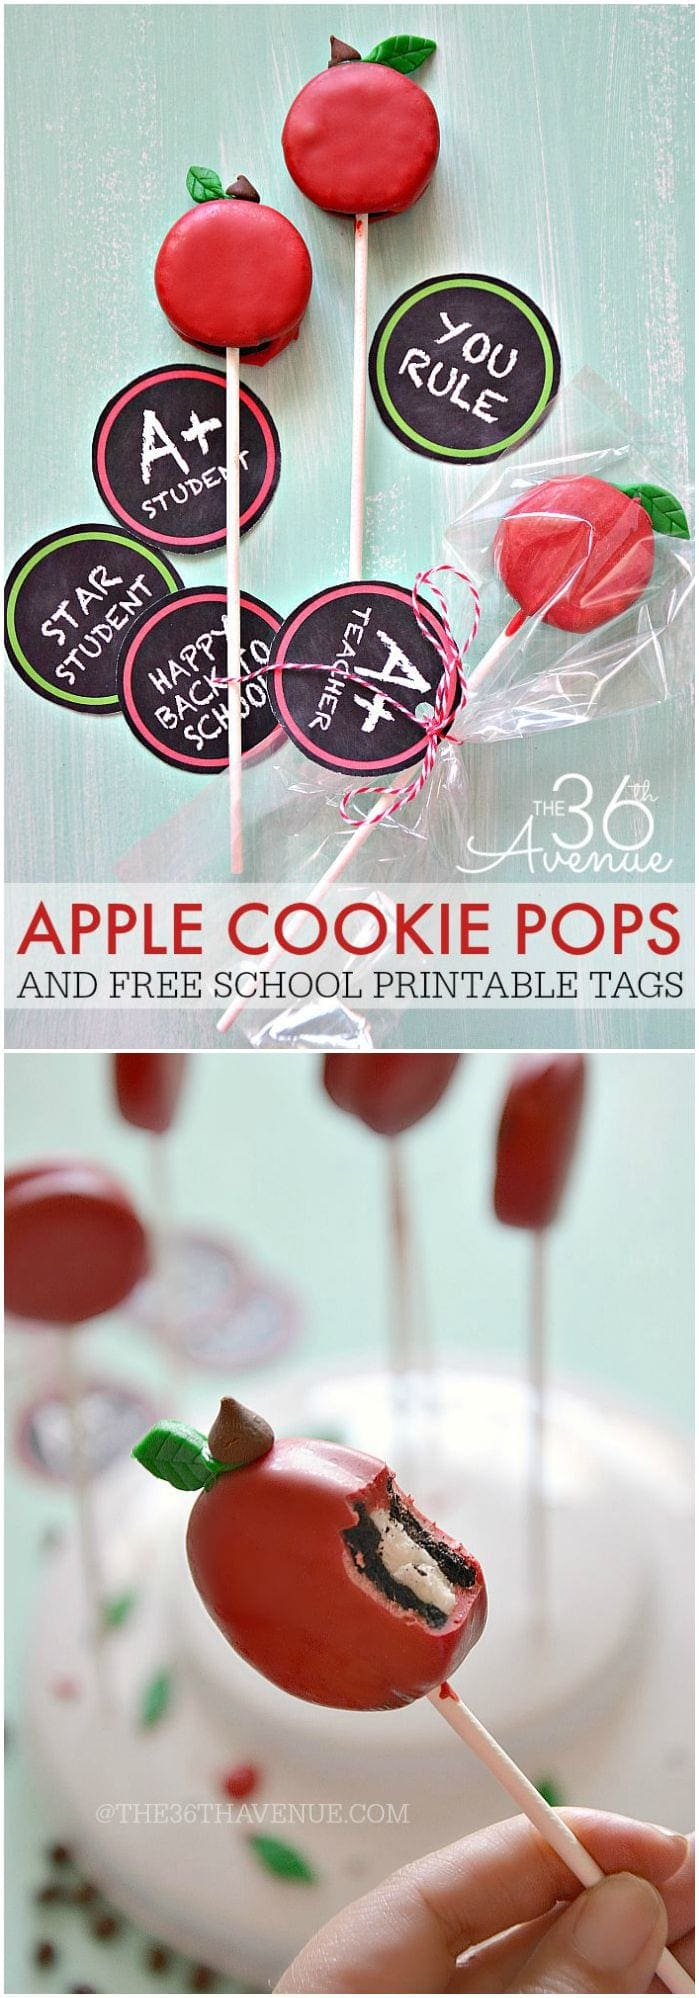 apple cookie pops with printable